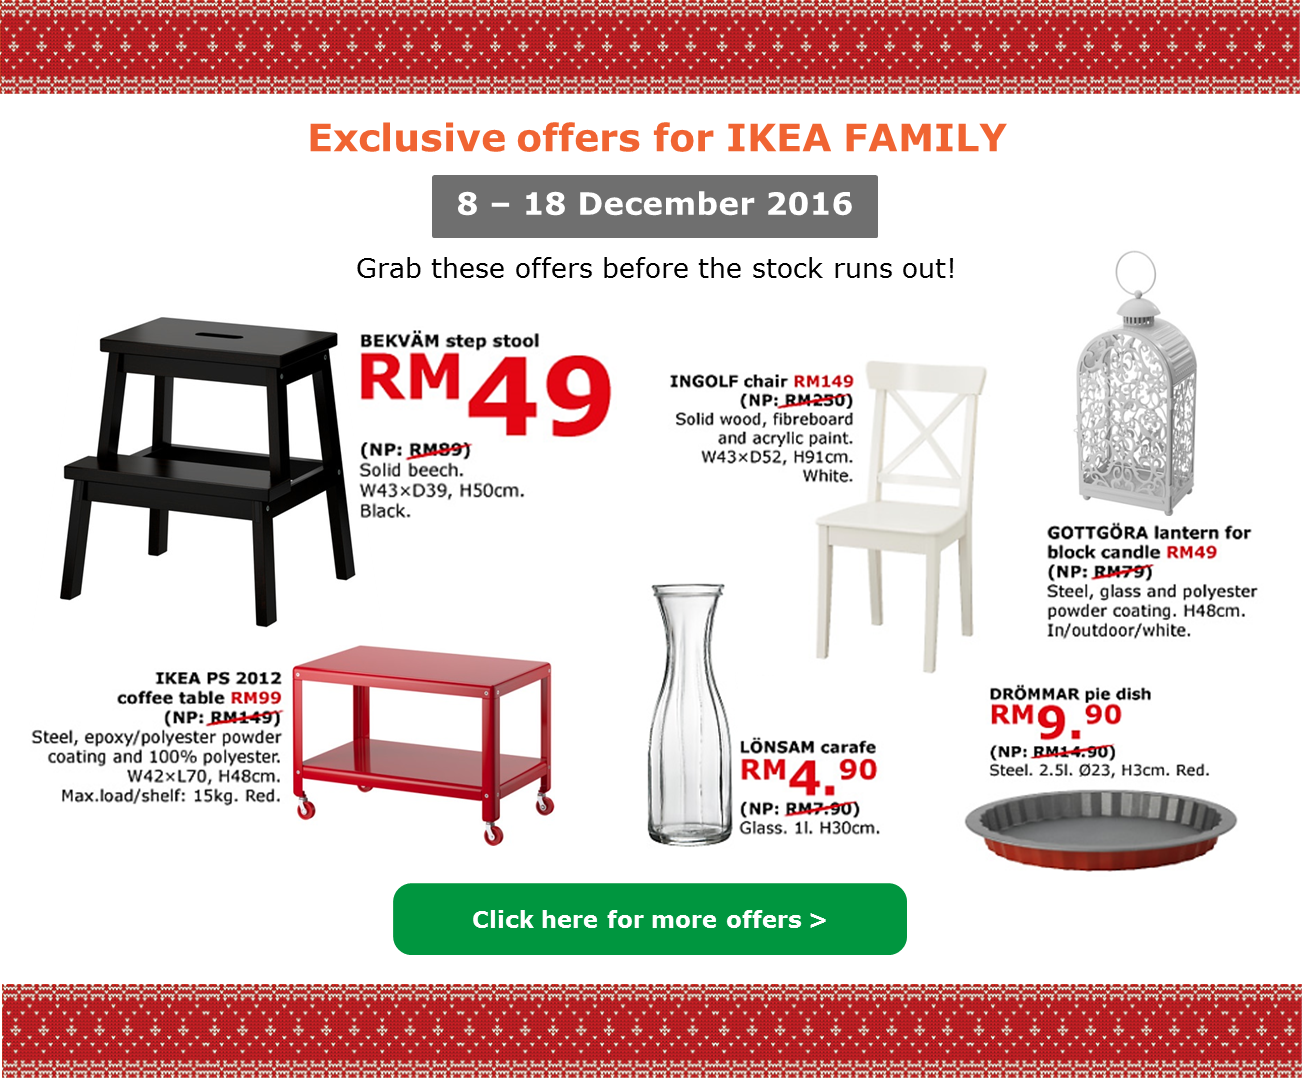 cara menjadi ahli ikea family budak bandung laici. Black Bedroom Furniture Sets. Home Design Ideas